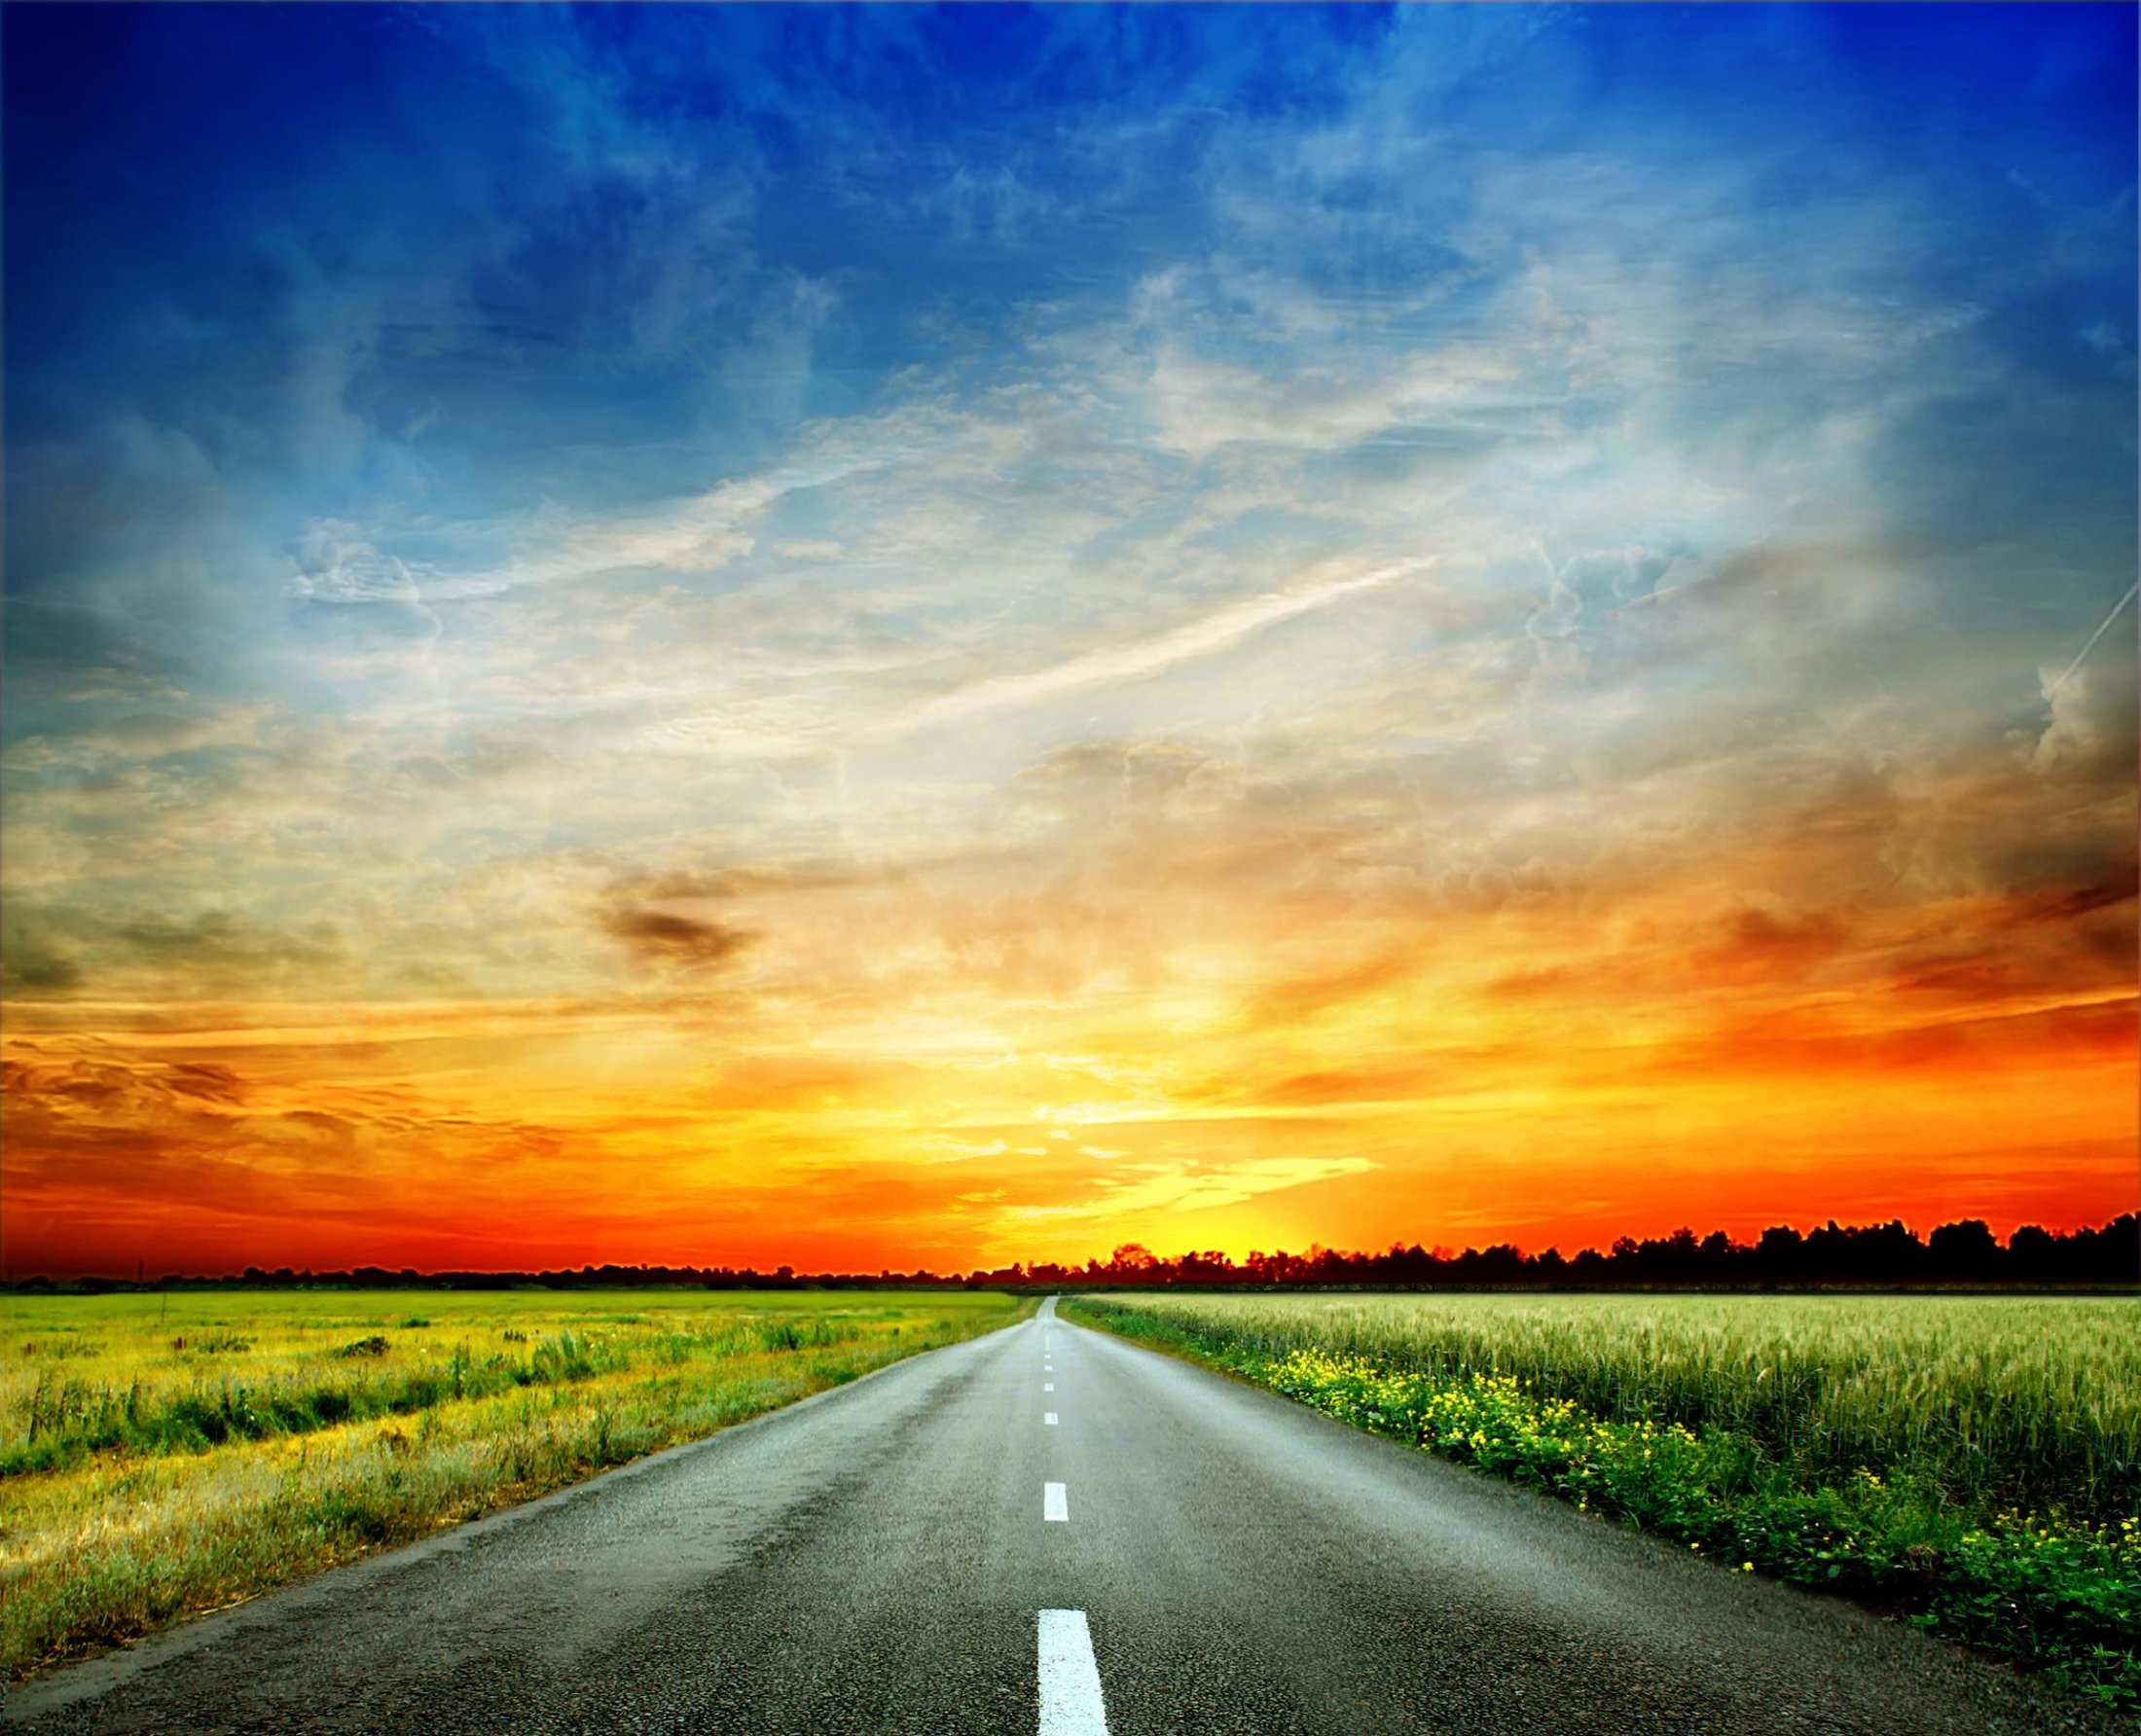 bigstock-Long-country-road-with-white-l-36393616 copy